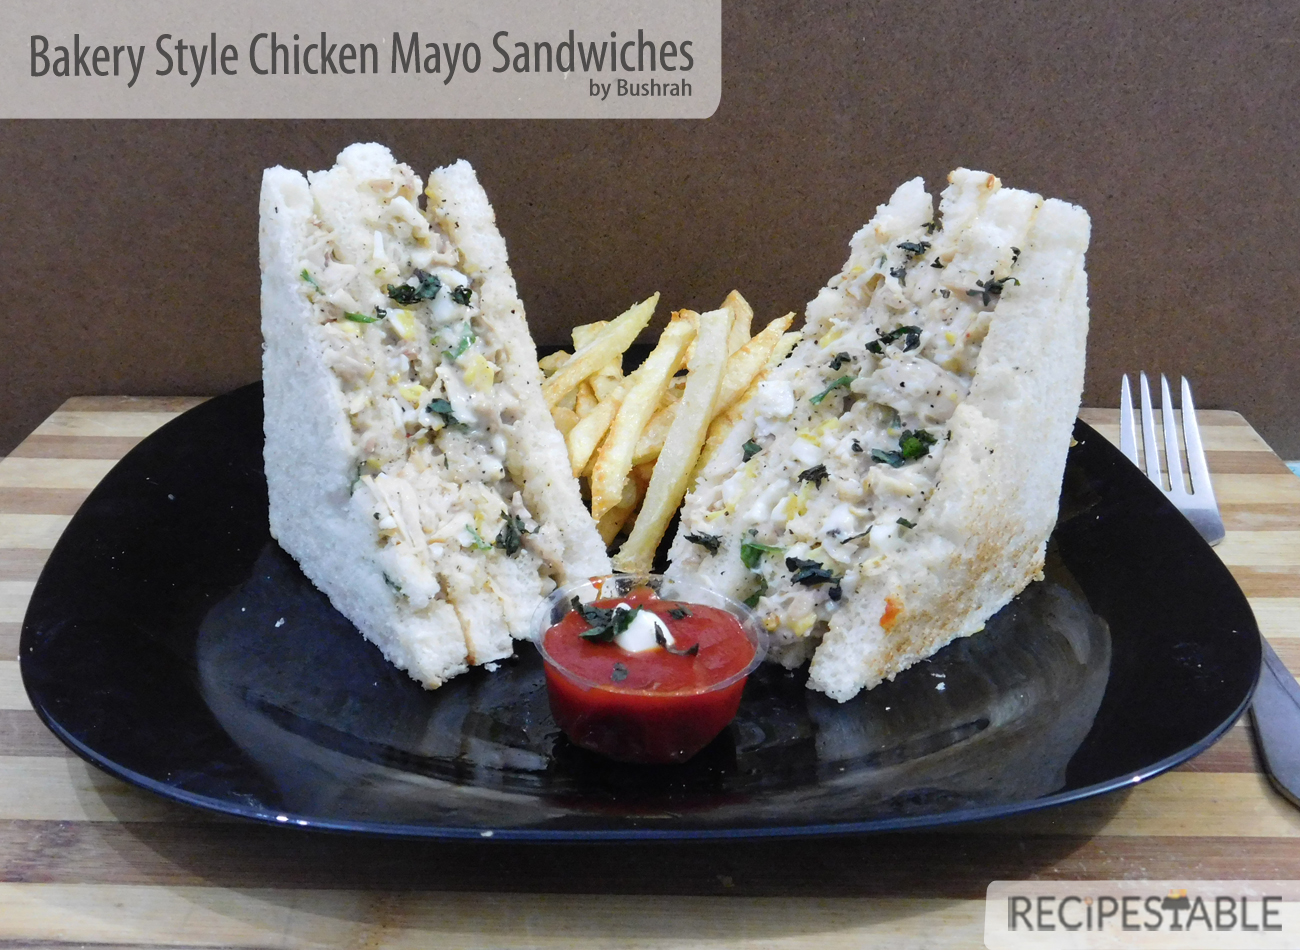 Bakery Style Chicken Mayo Sandwiches Recipe